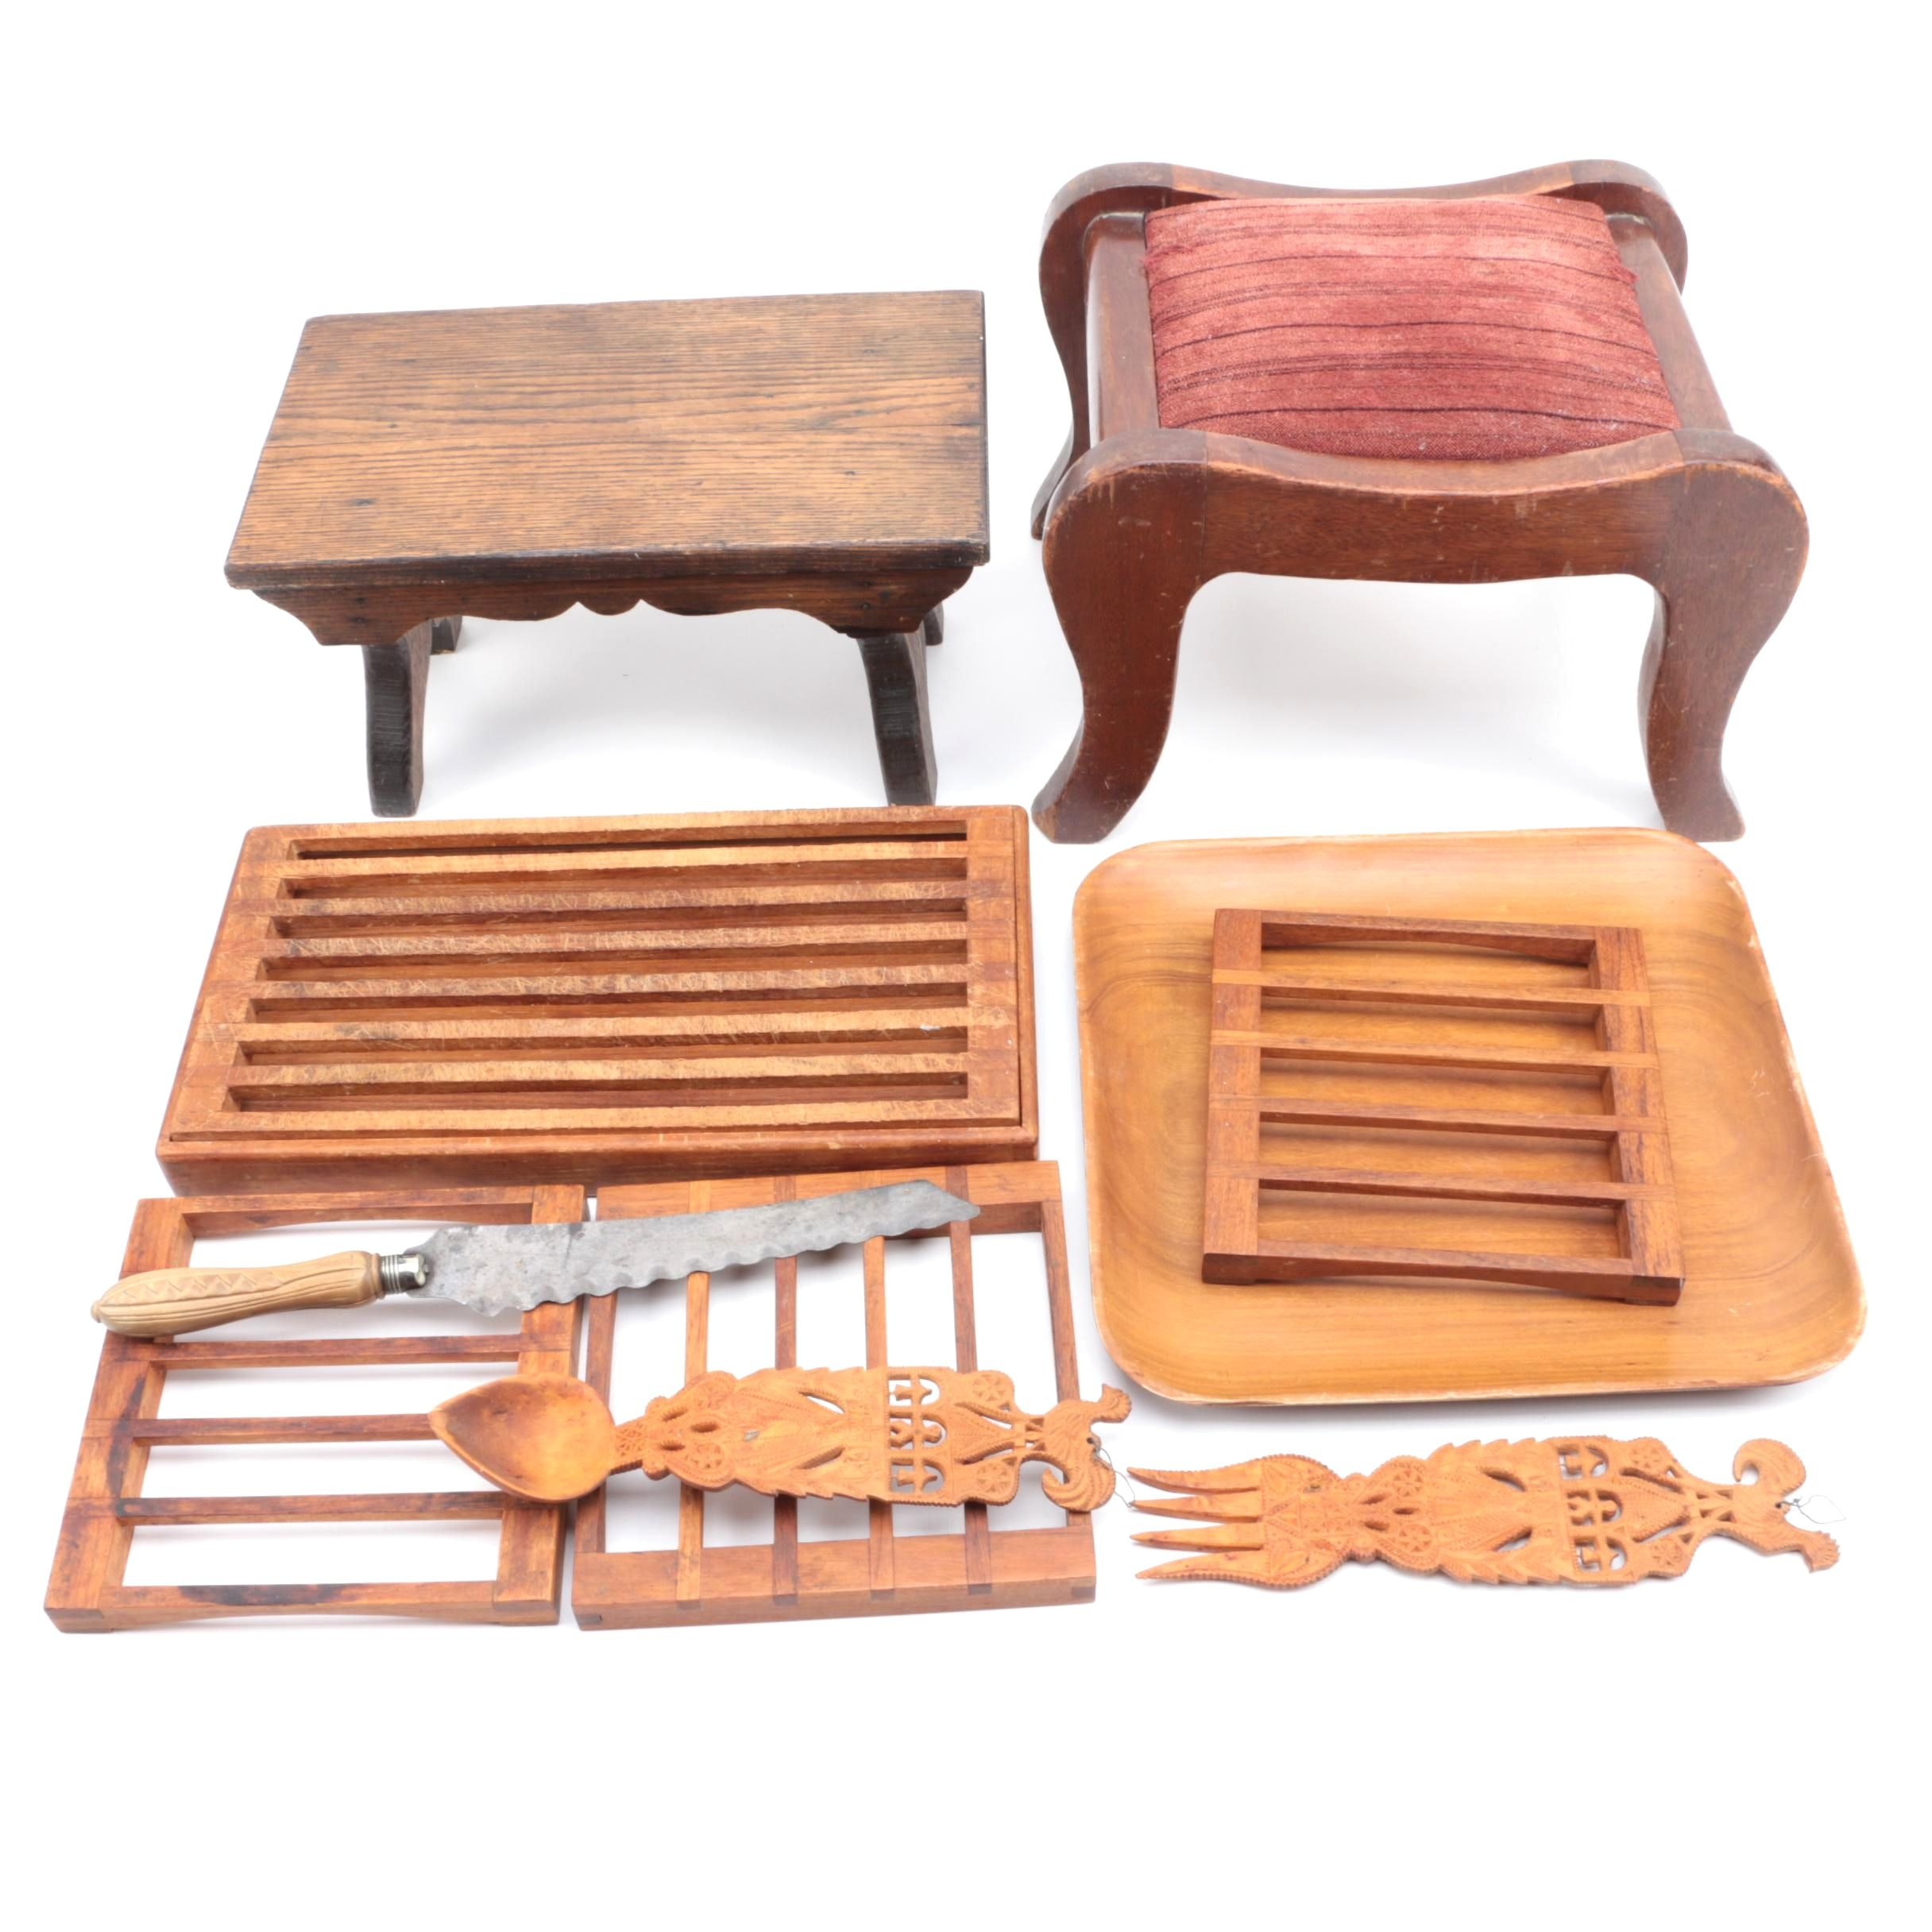 Wooden Stools Trivets and Tableware